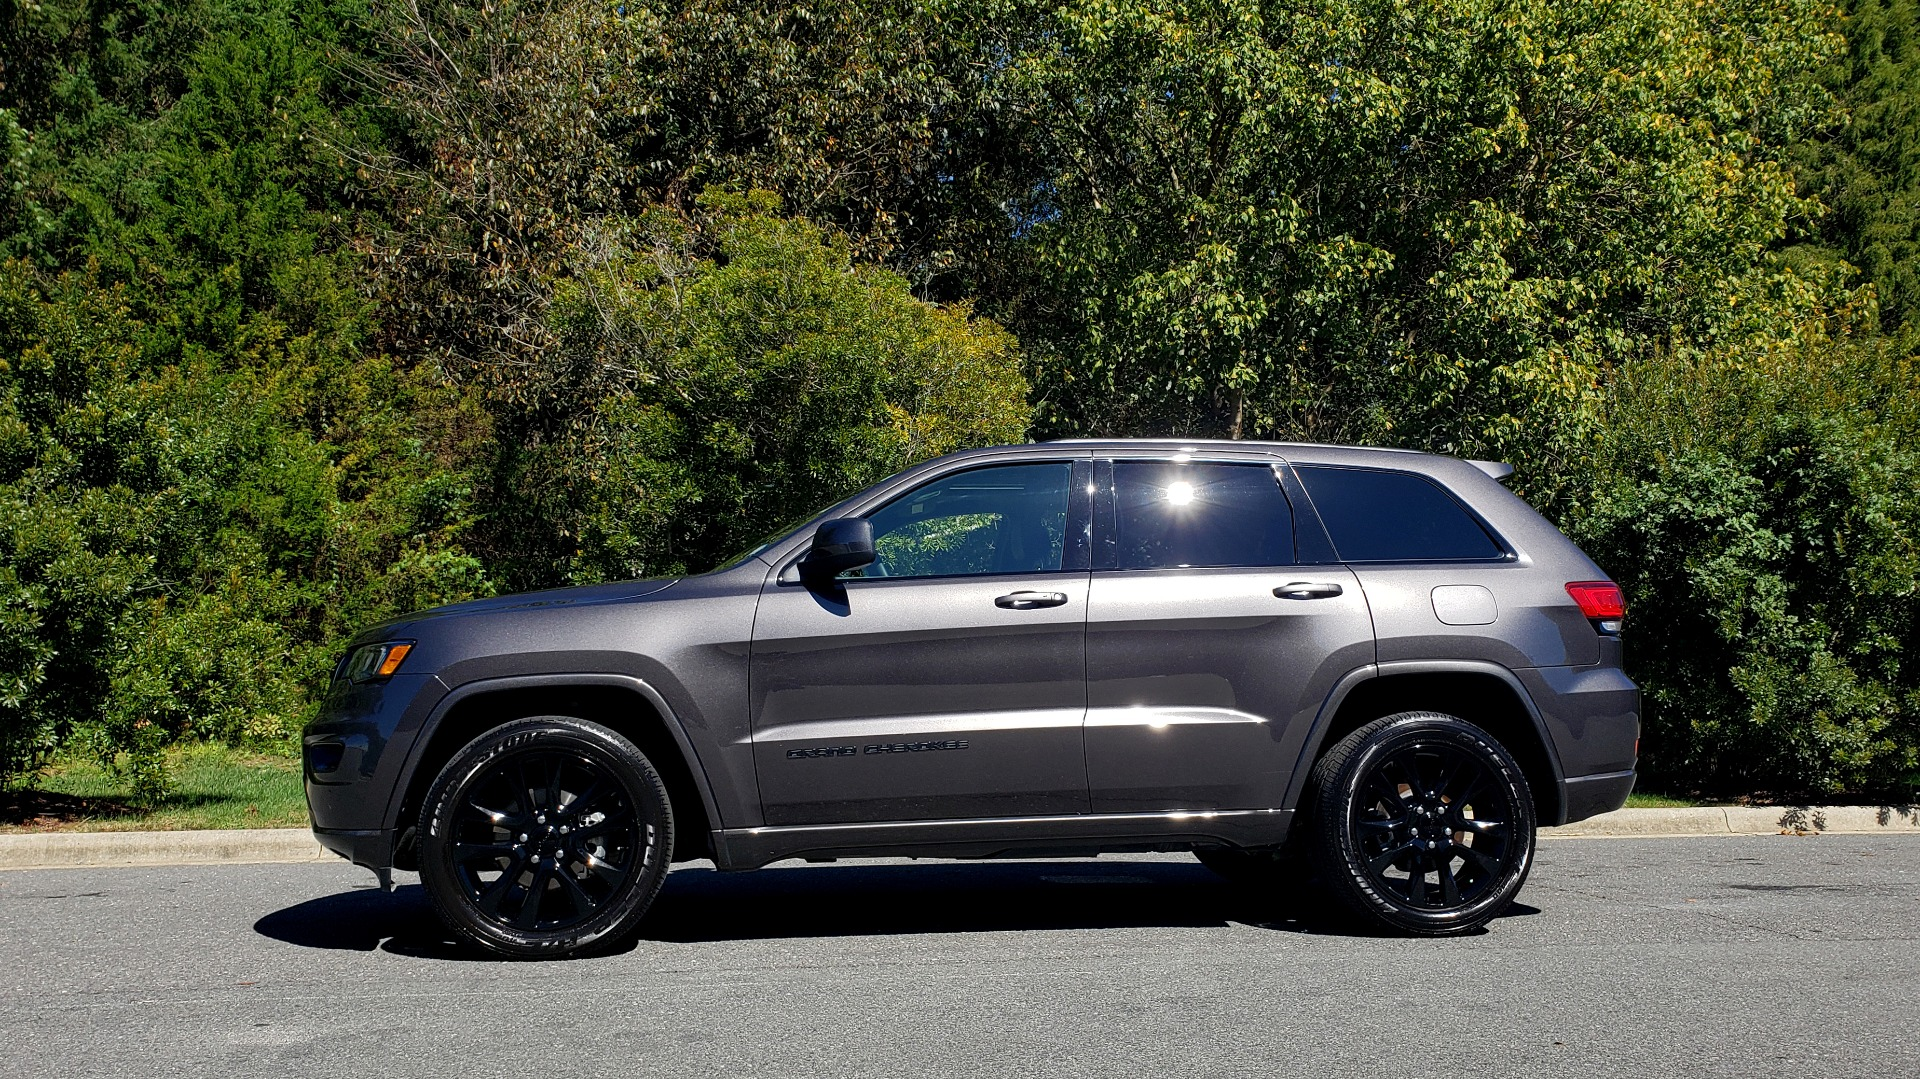 Used 2019 Jeep GRAND CHEROKEE ALTITUDE 4X4 / NAV / WIFI / SUNROOF / REARVIEW for sale $34,995 at Formula Imports in Charlotte NC 28227 2